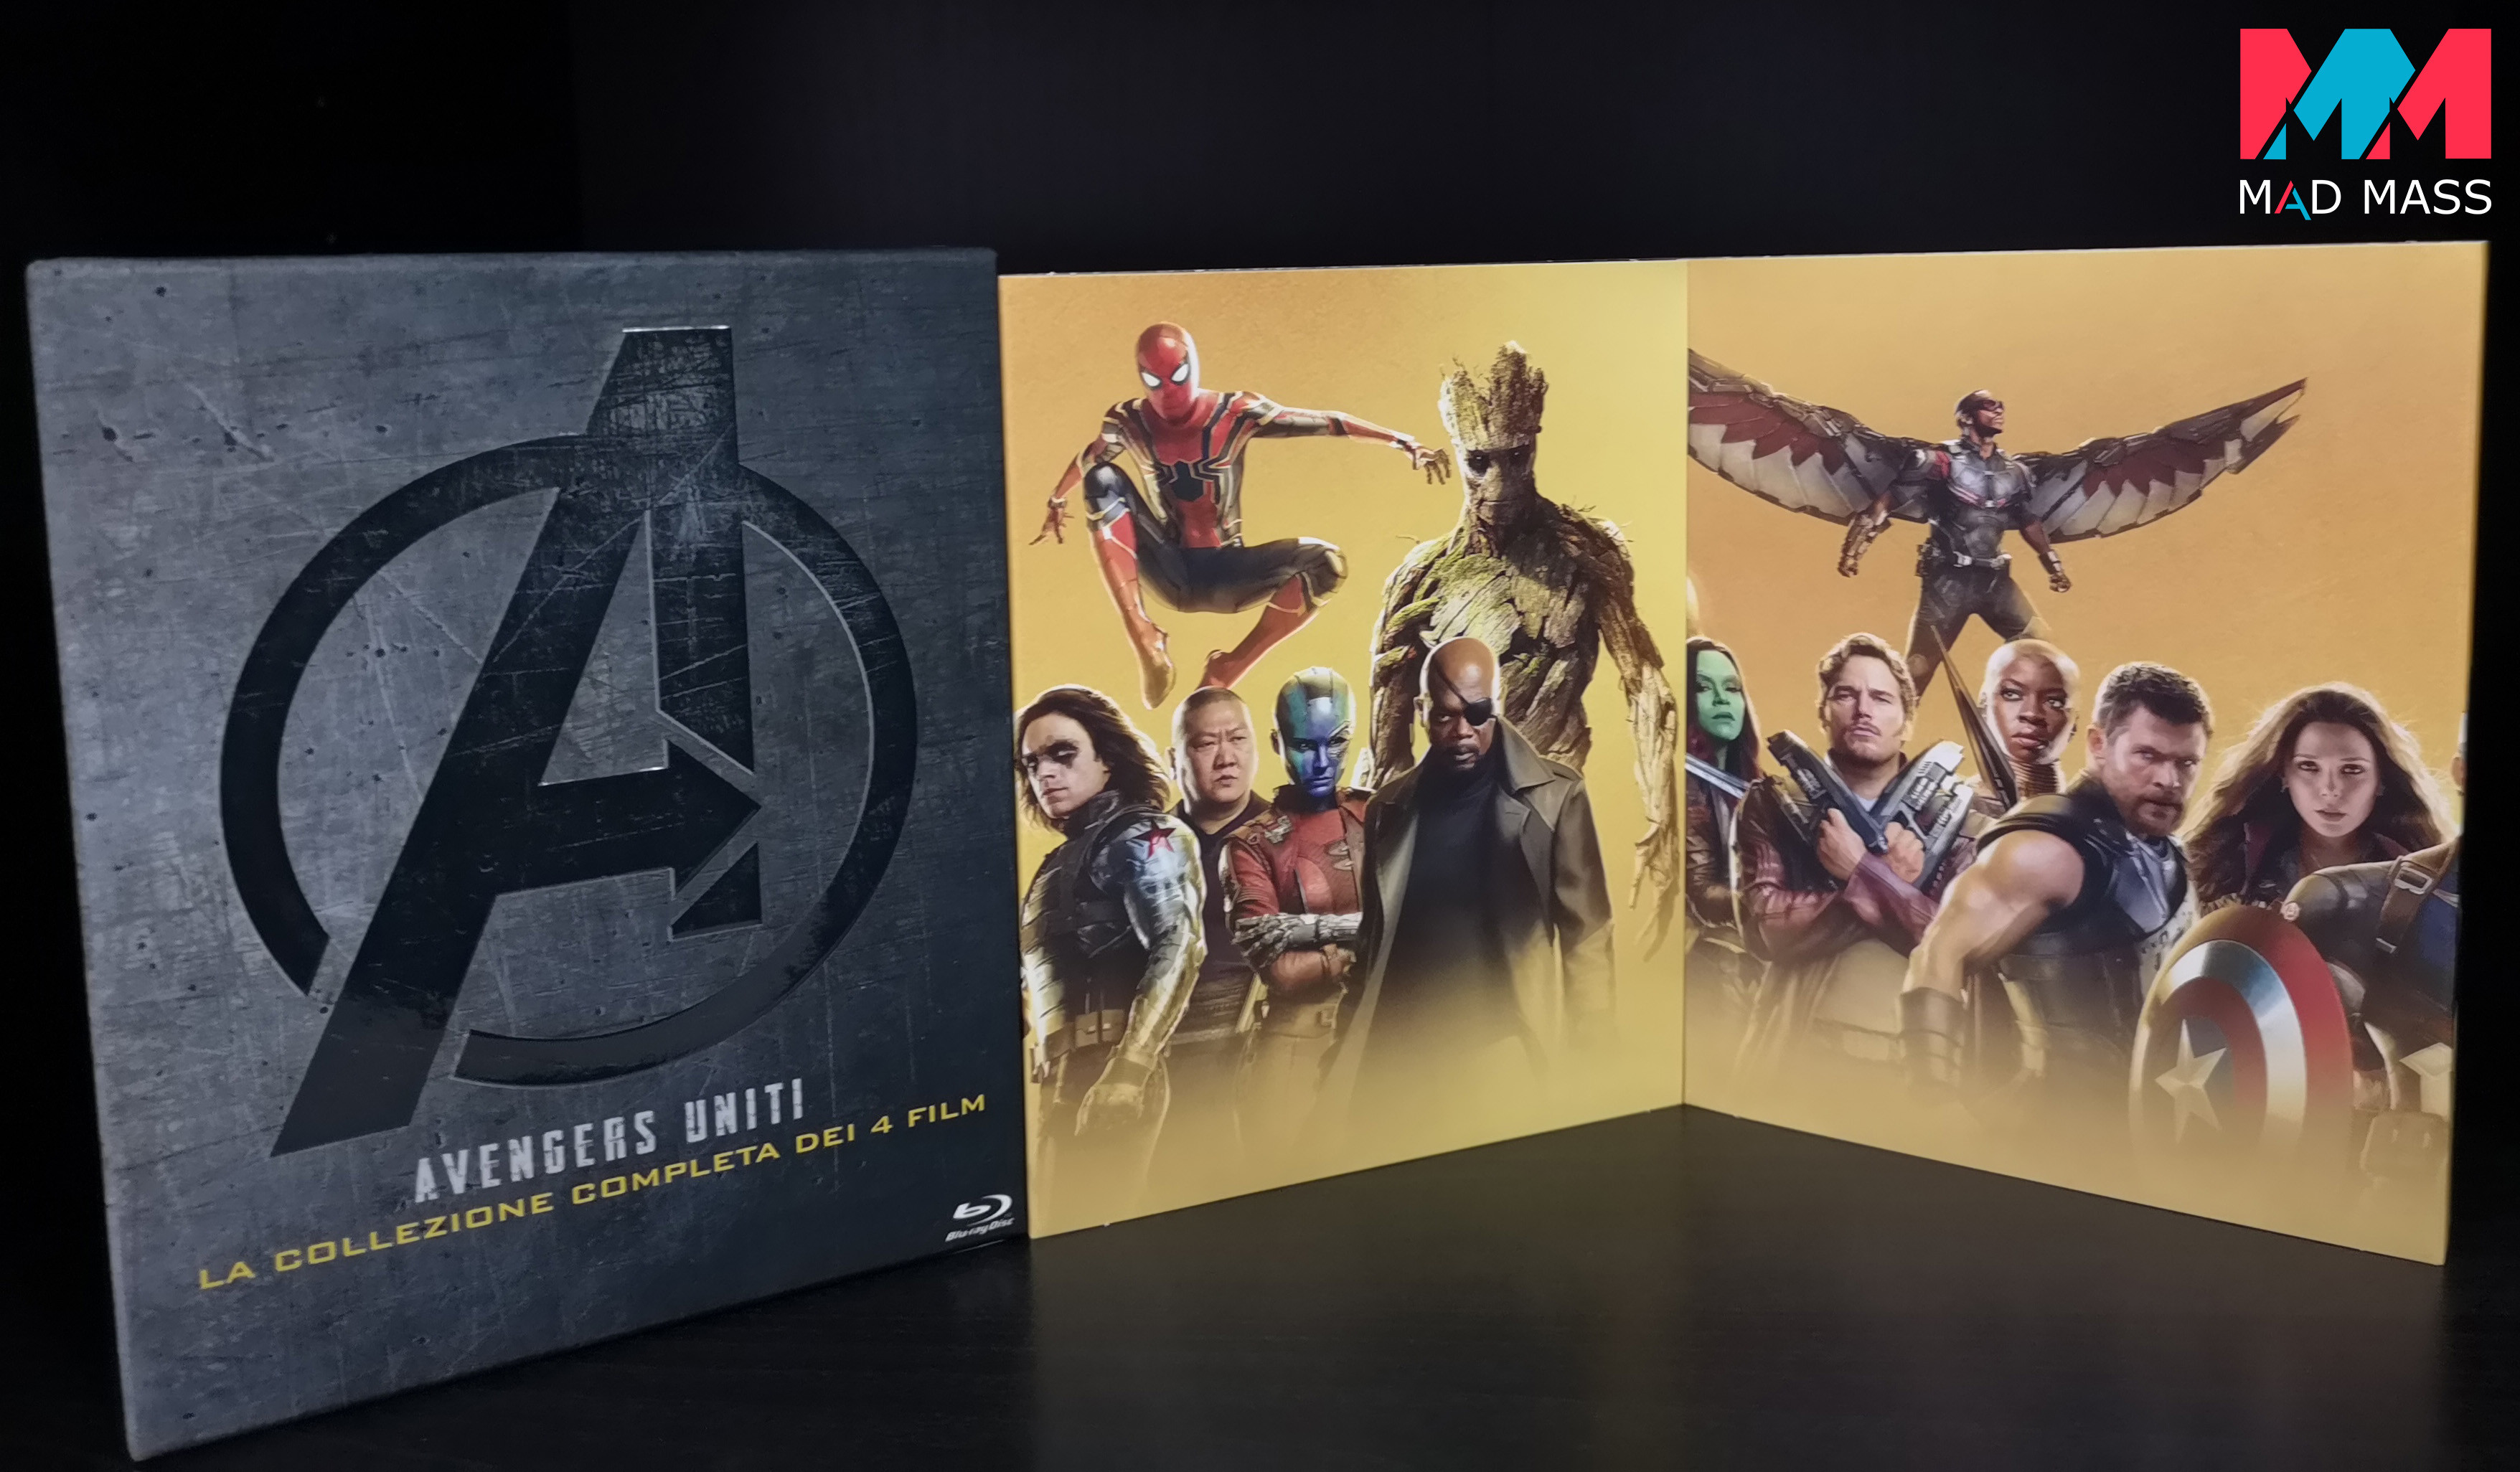 Black Friday Amazon 2019: Avengers il cofanetto della saga in Blu-ray